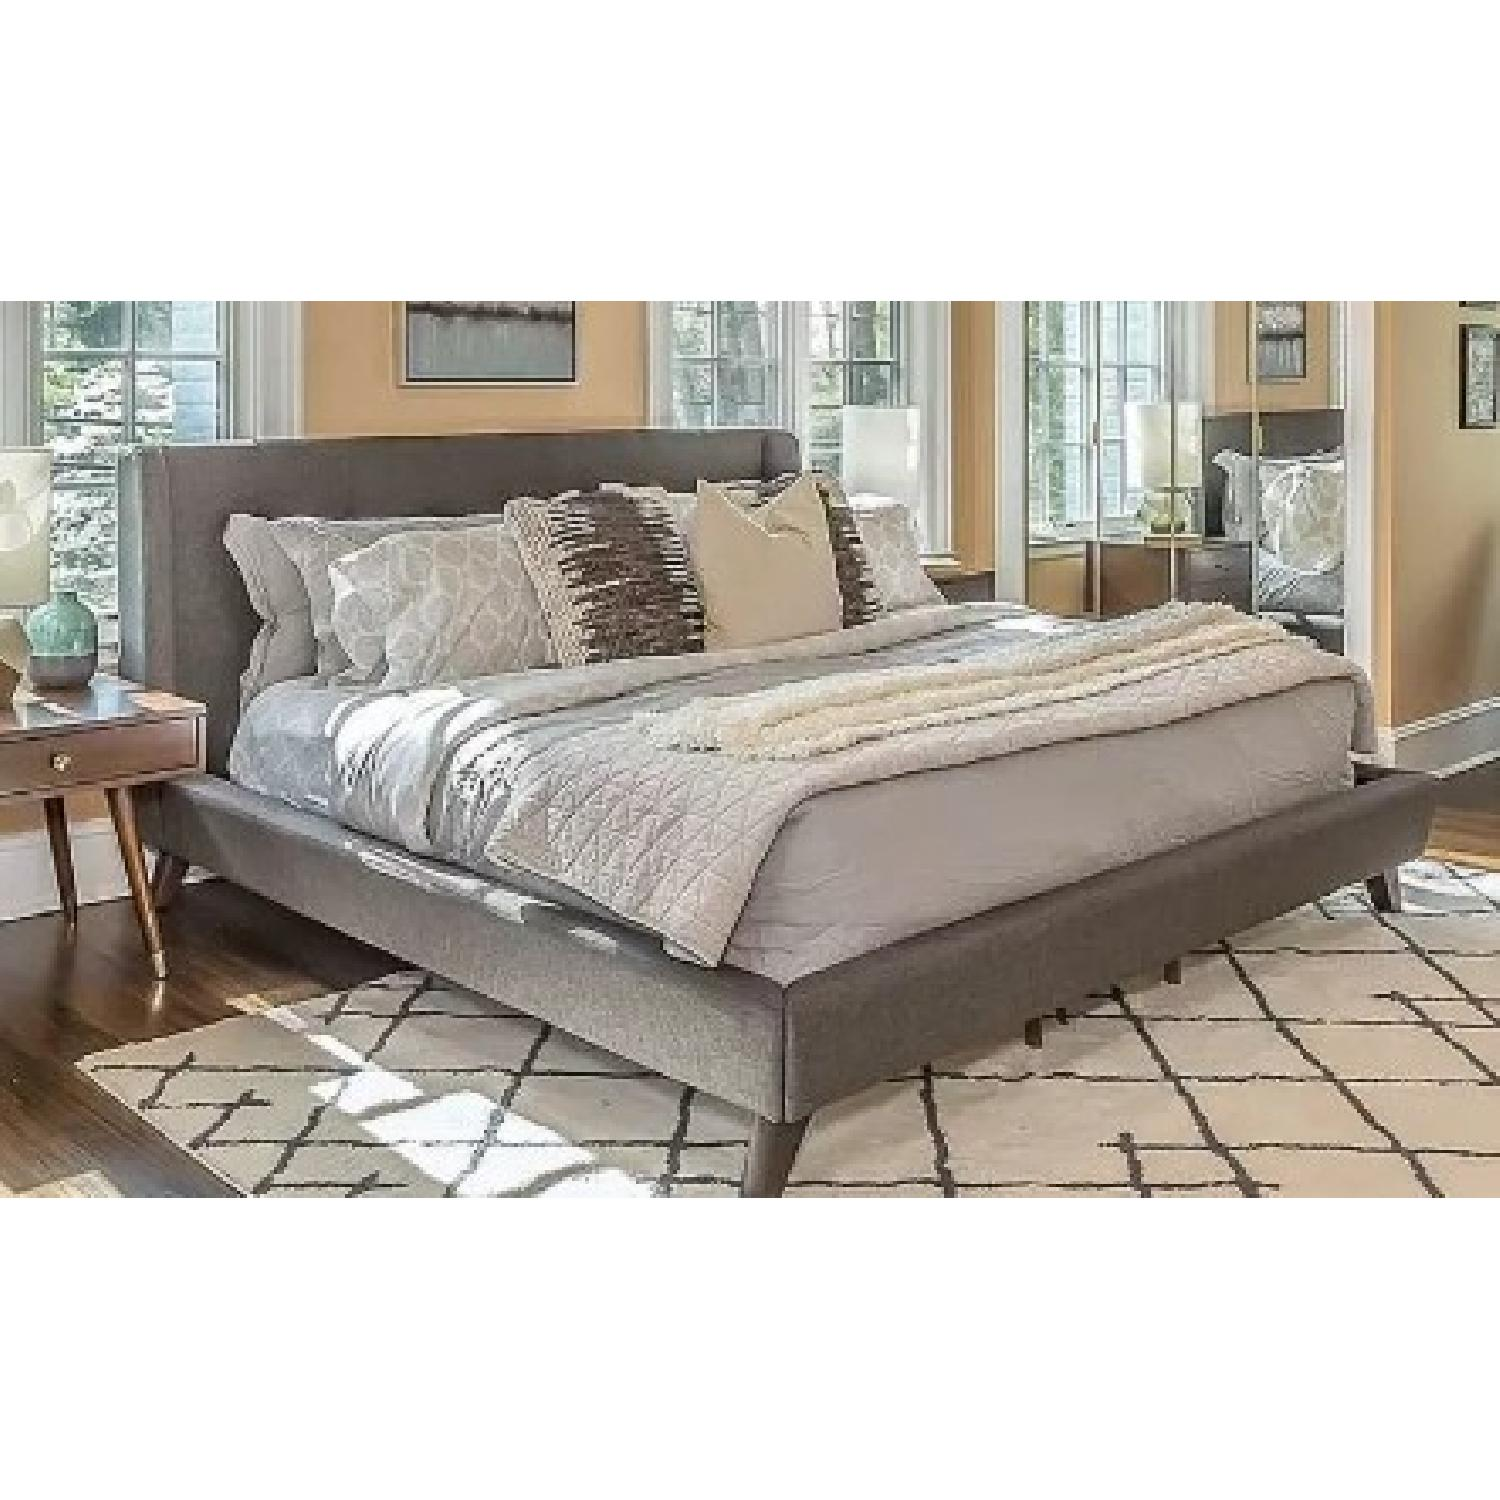 Mid Century Style King Platform Bed in Grey Fabric - image-1